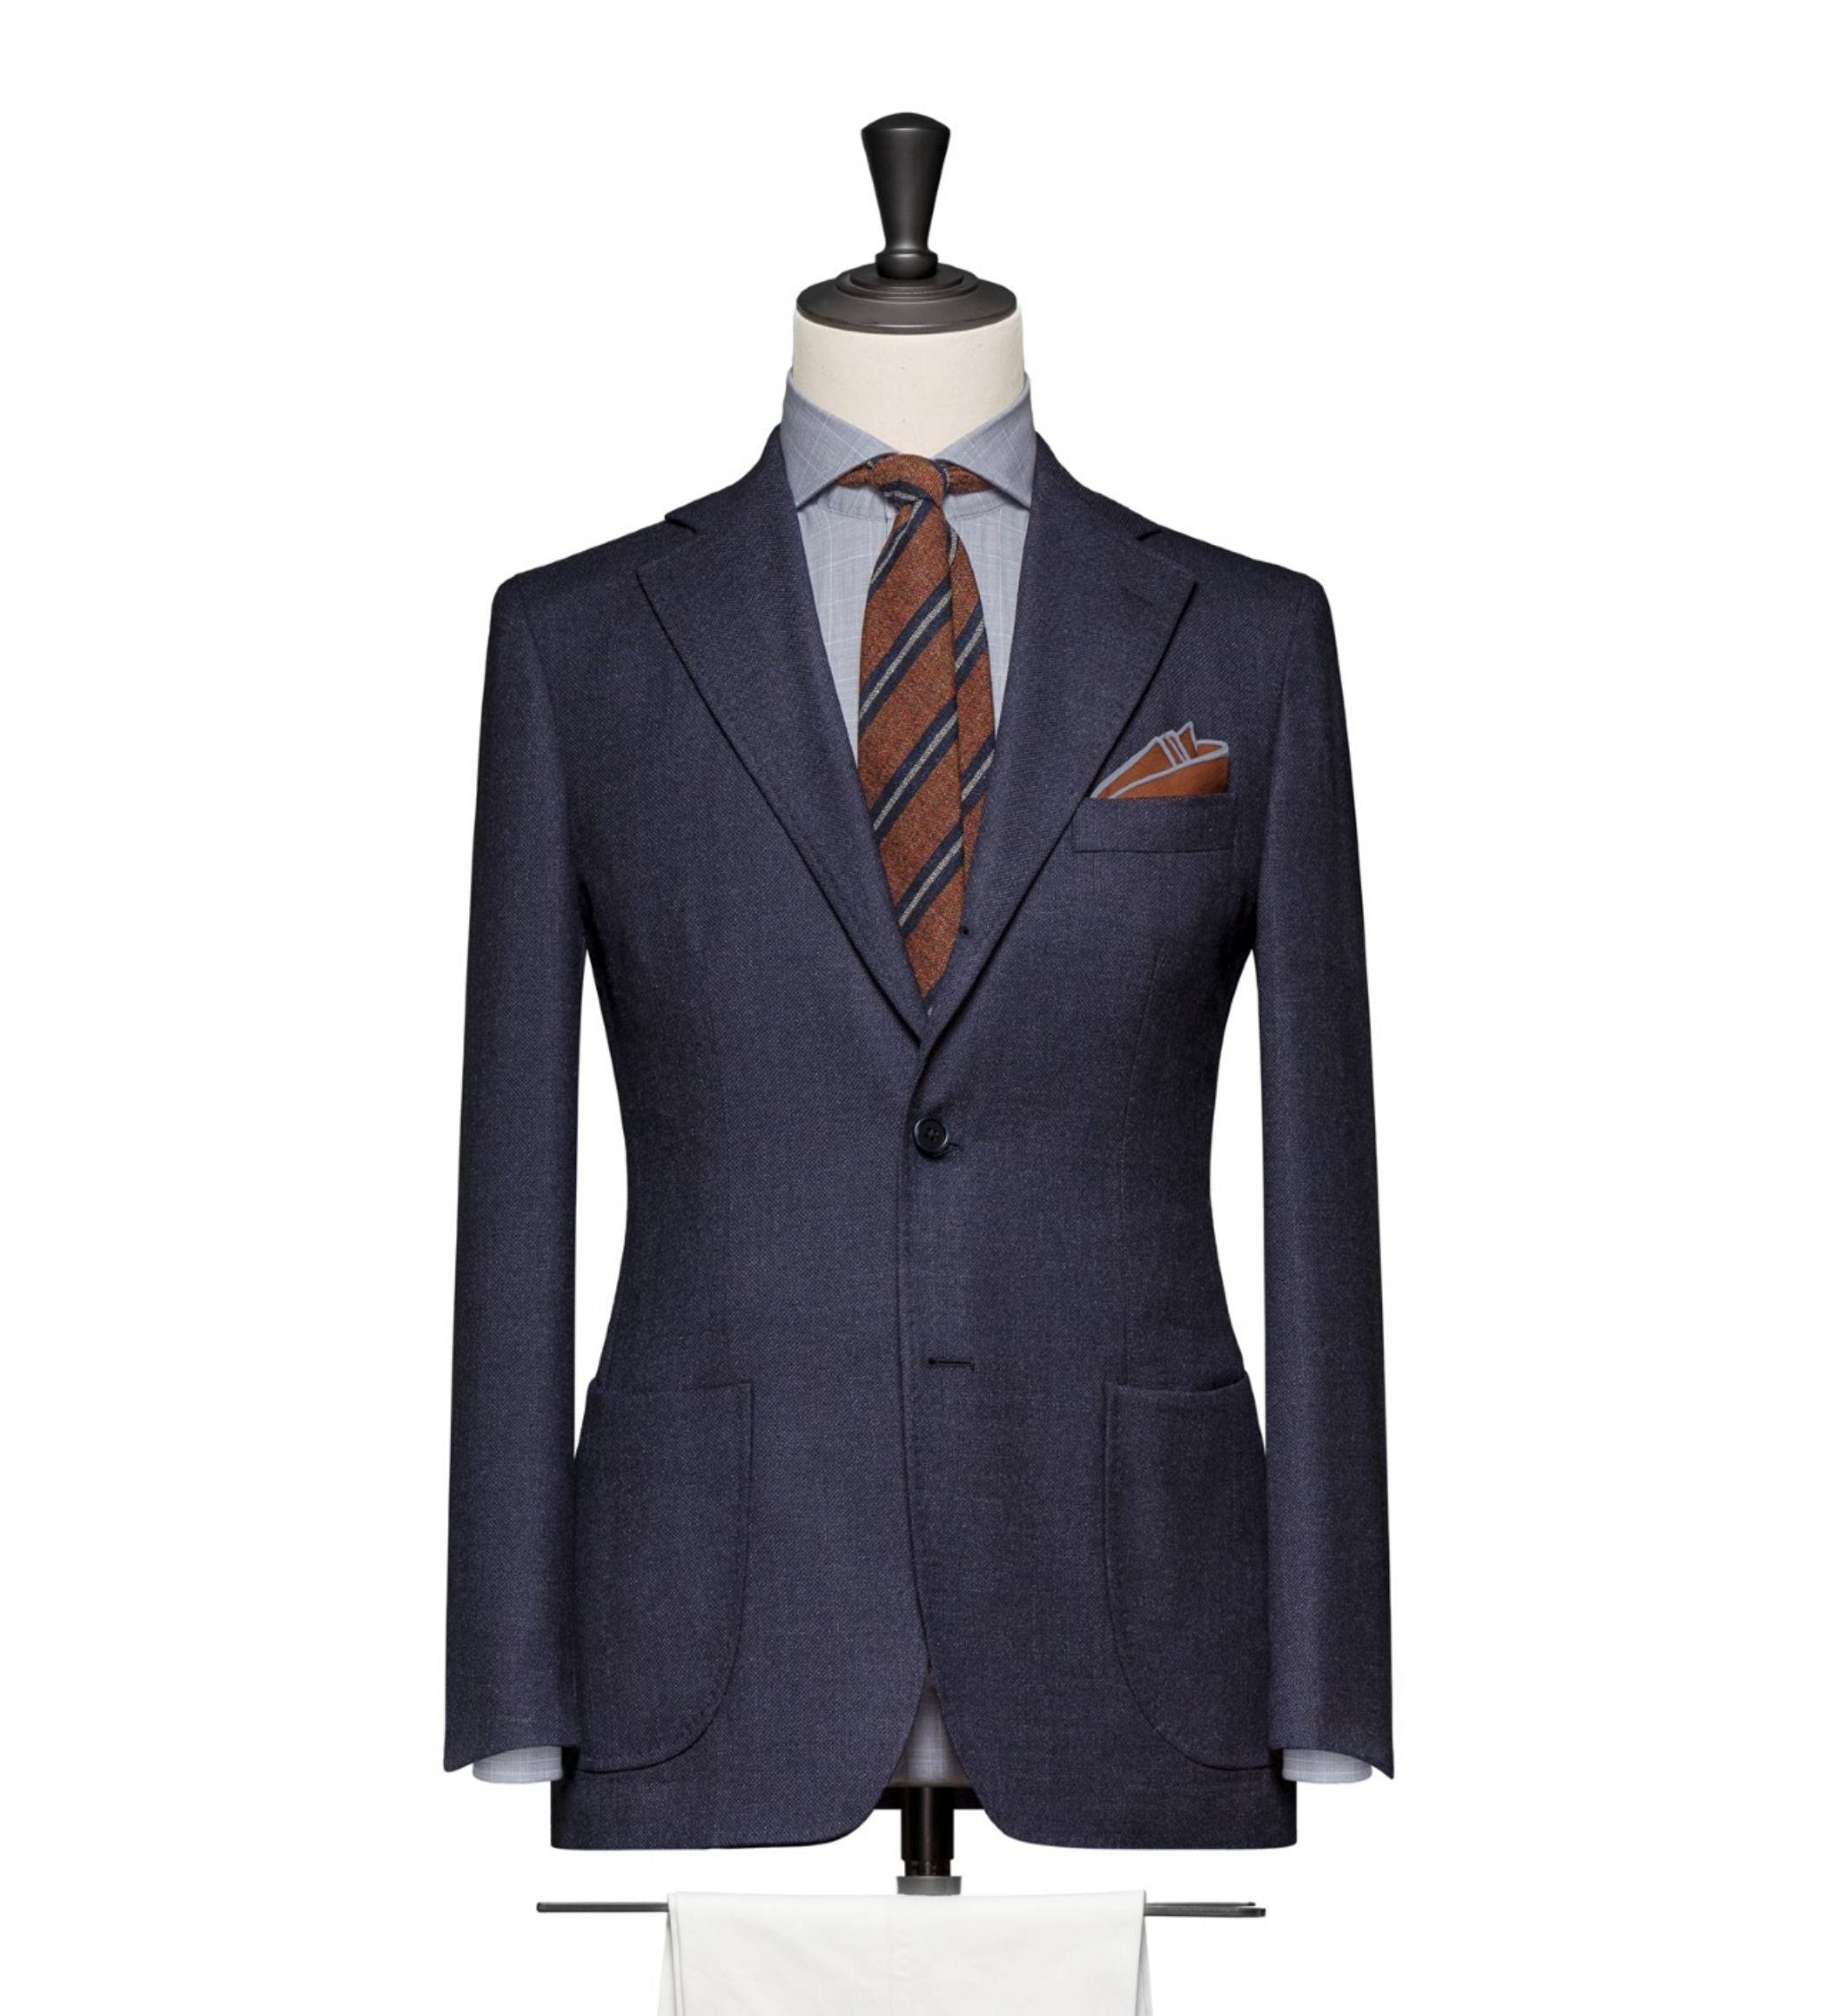 How to combine suits and sport coats - blue blazer with white trousers